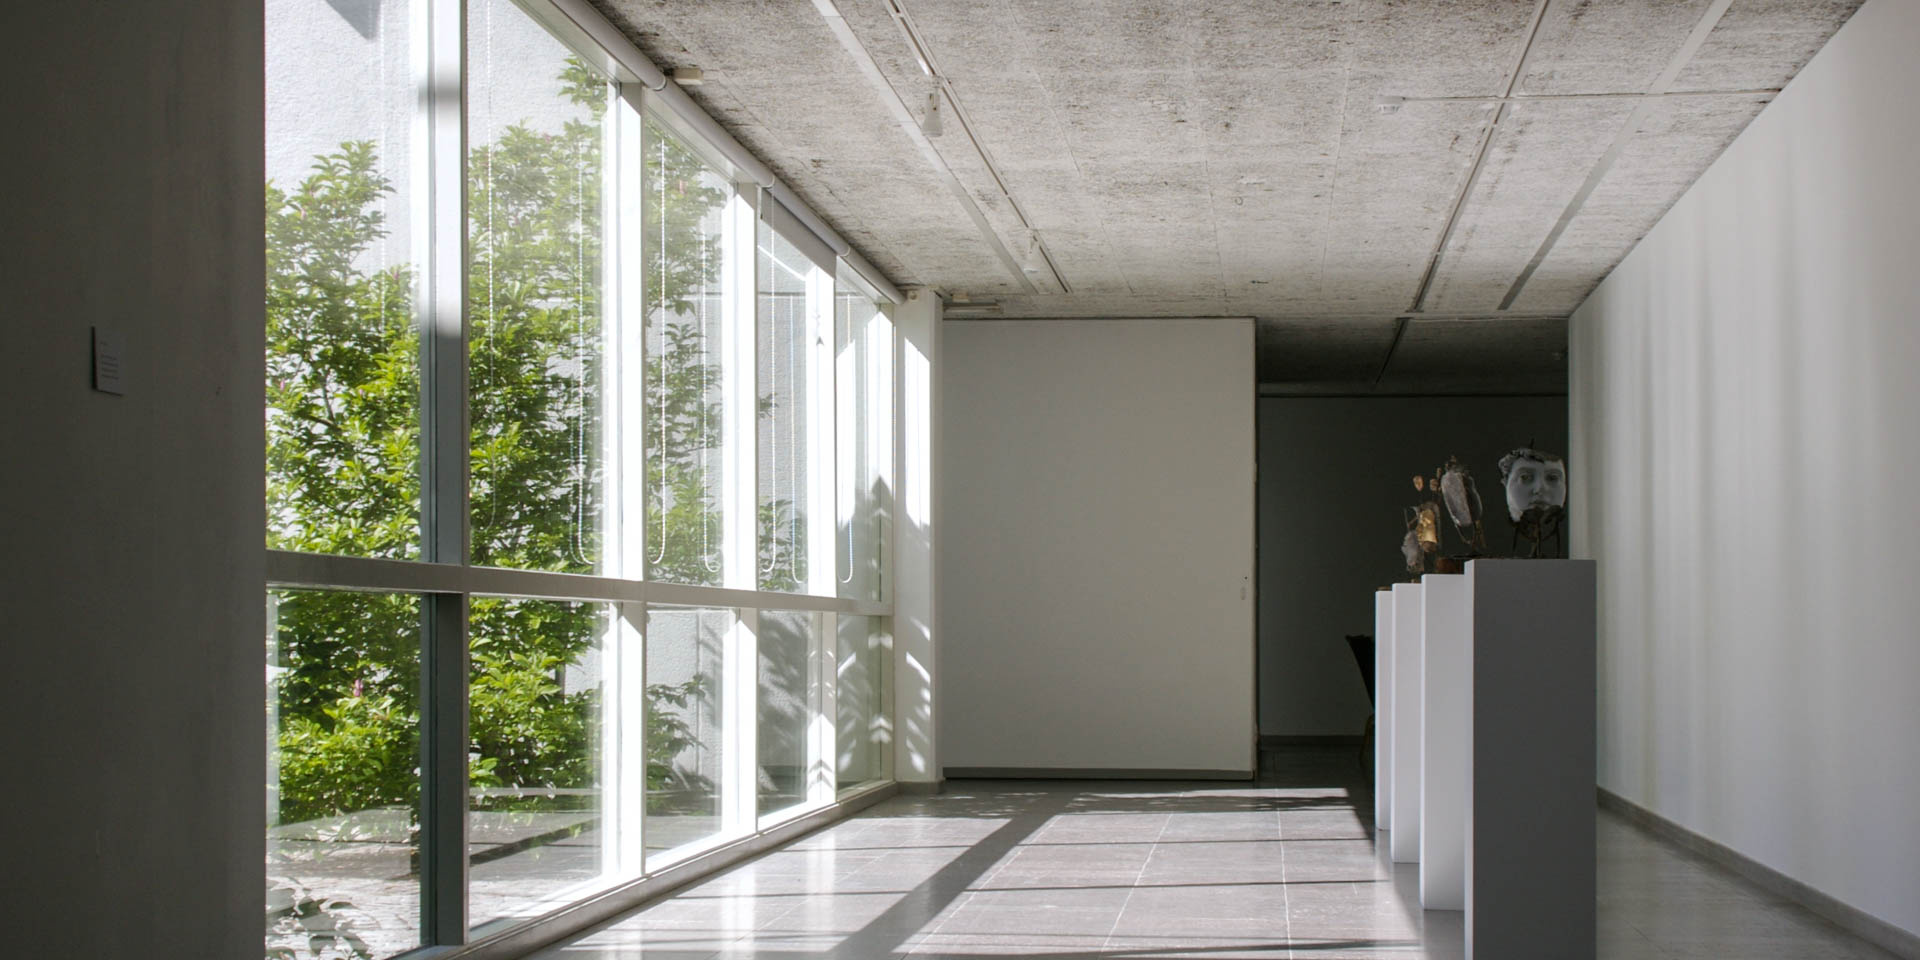 Lunds Konsthall 2008